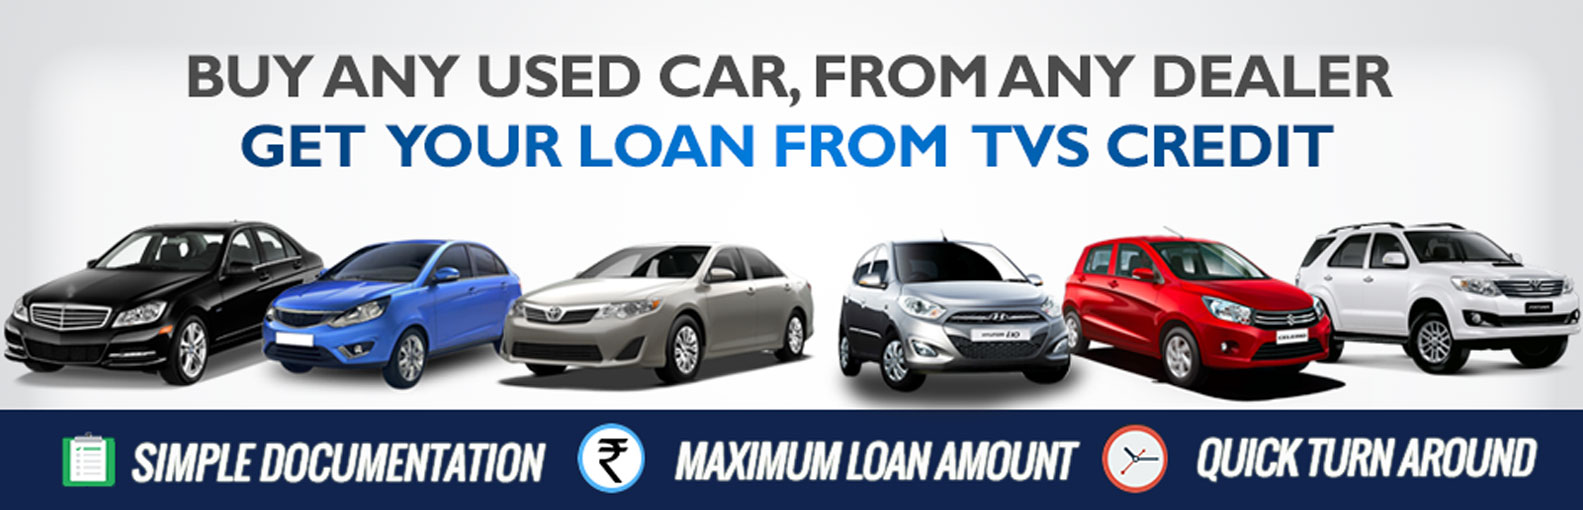 Used Car Loan >> New India Finance Co Services New Used Car Loan Company